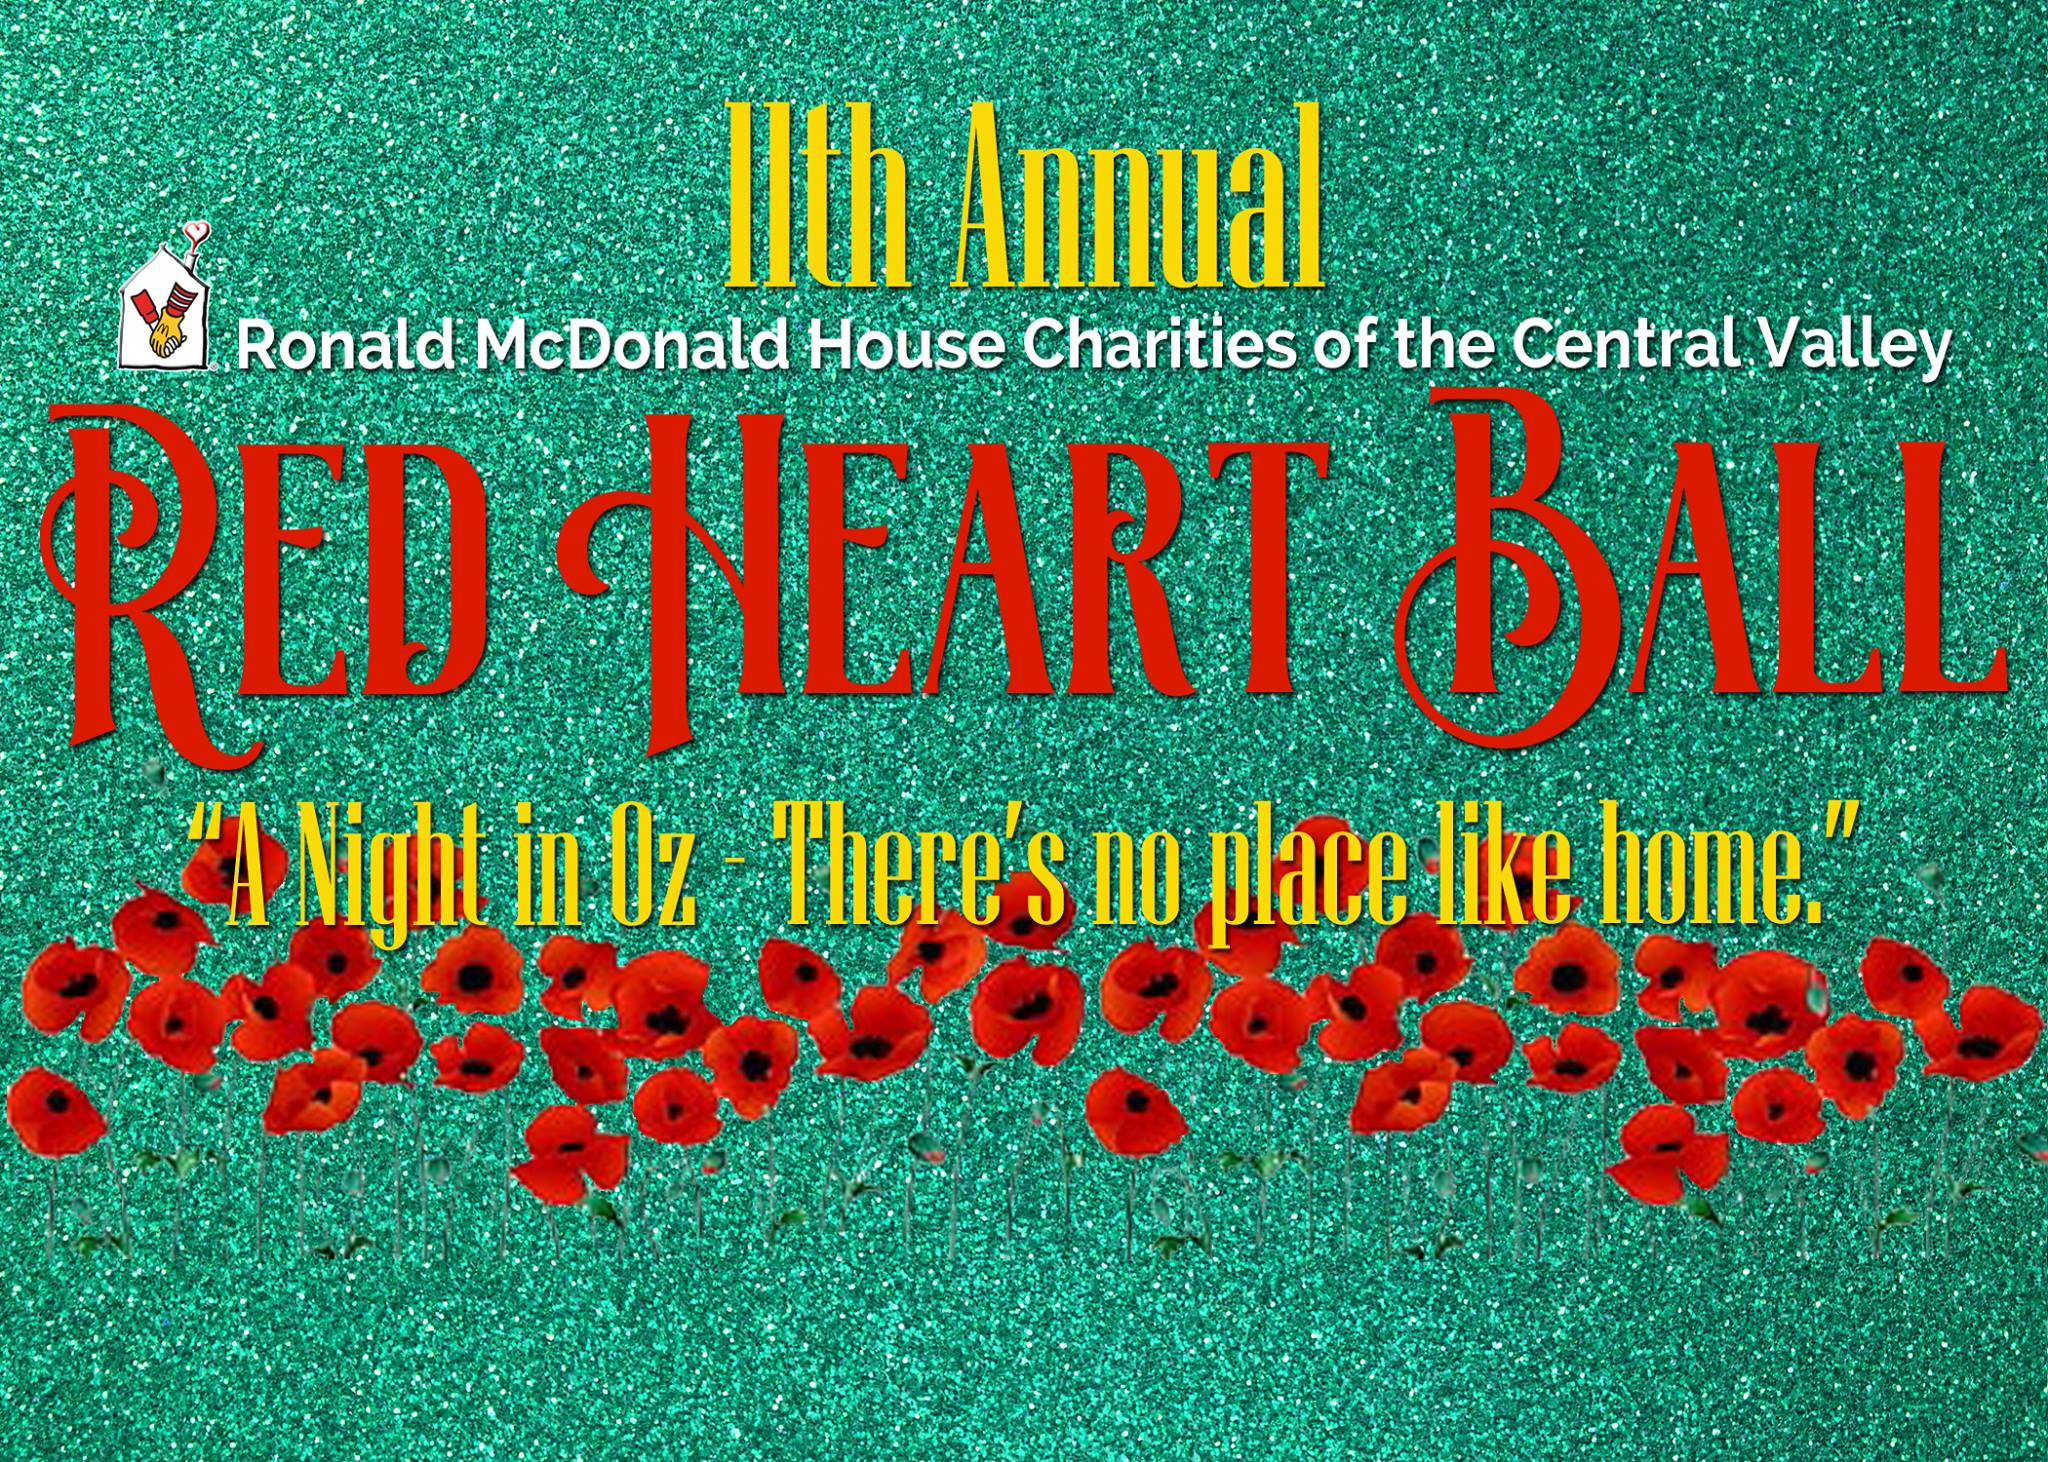 Royer Corporation Sponsors Ronald McDonald House